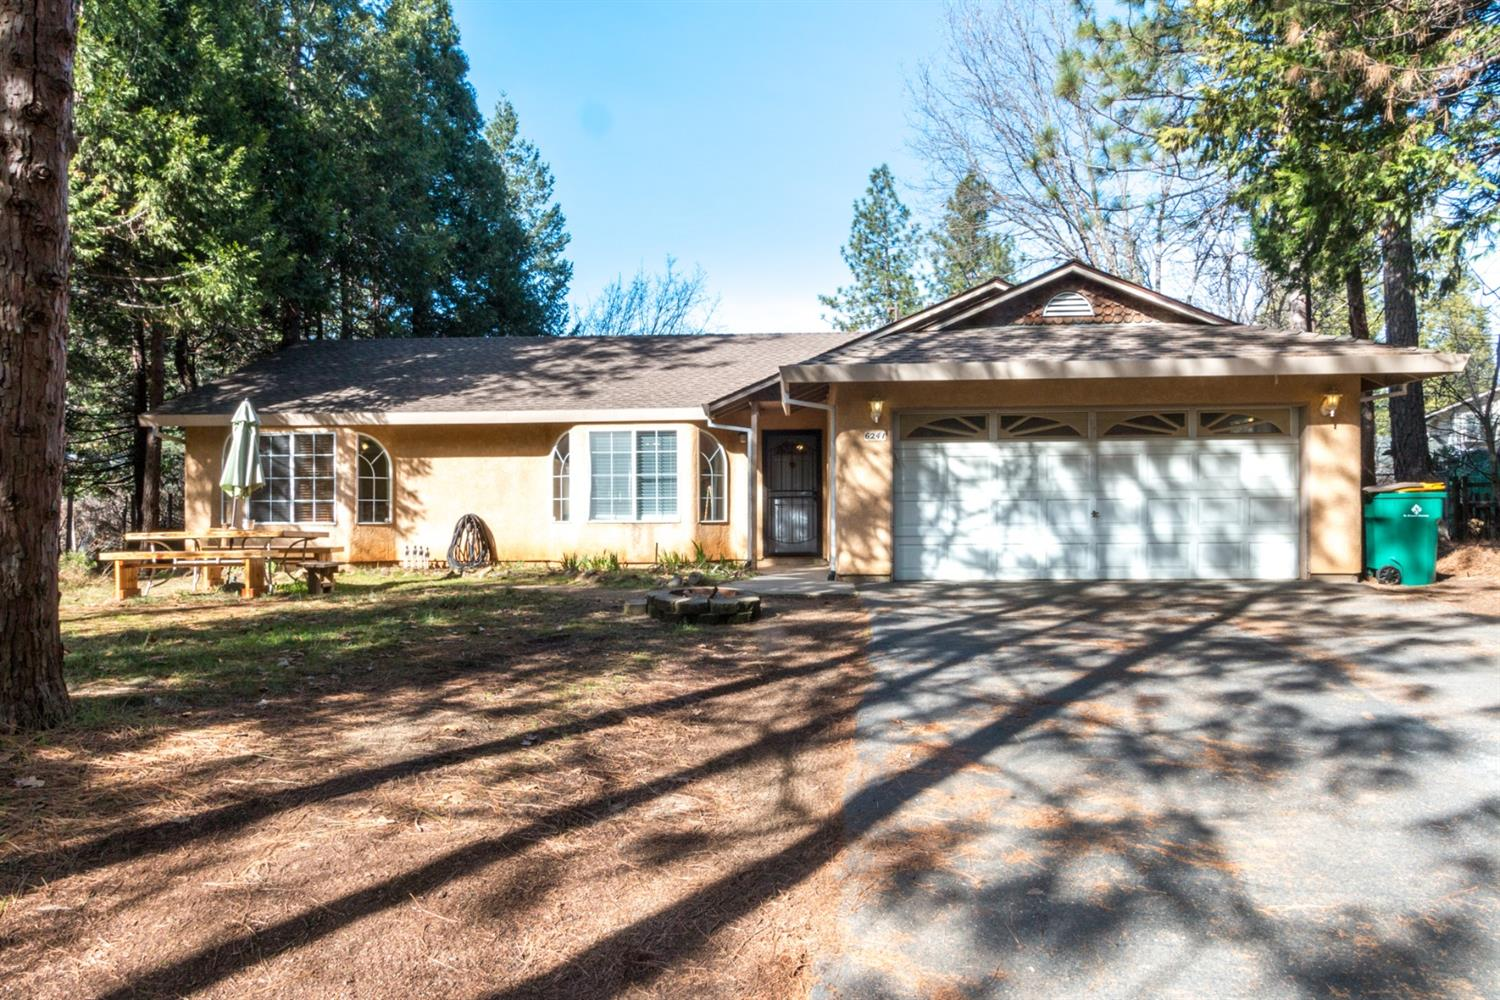 $305,000 - 3Br/2Ba -  for Sale in Pollock Pines